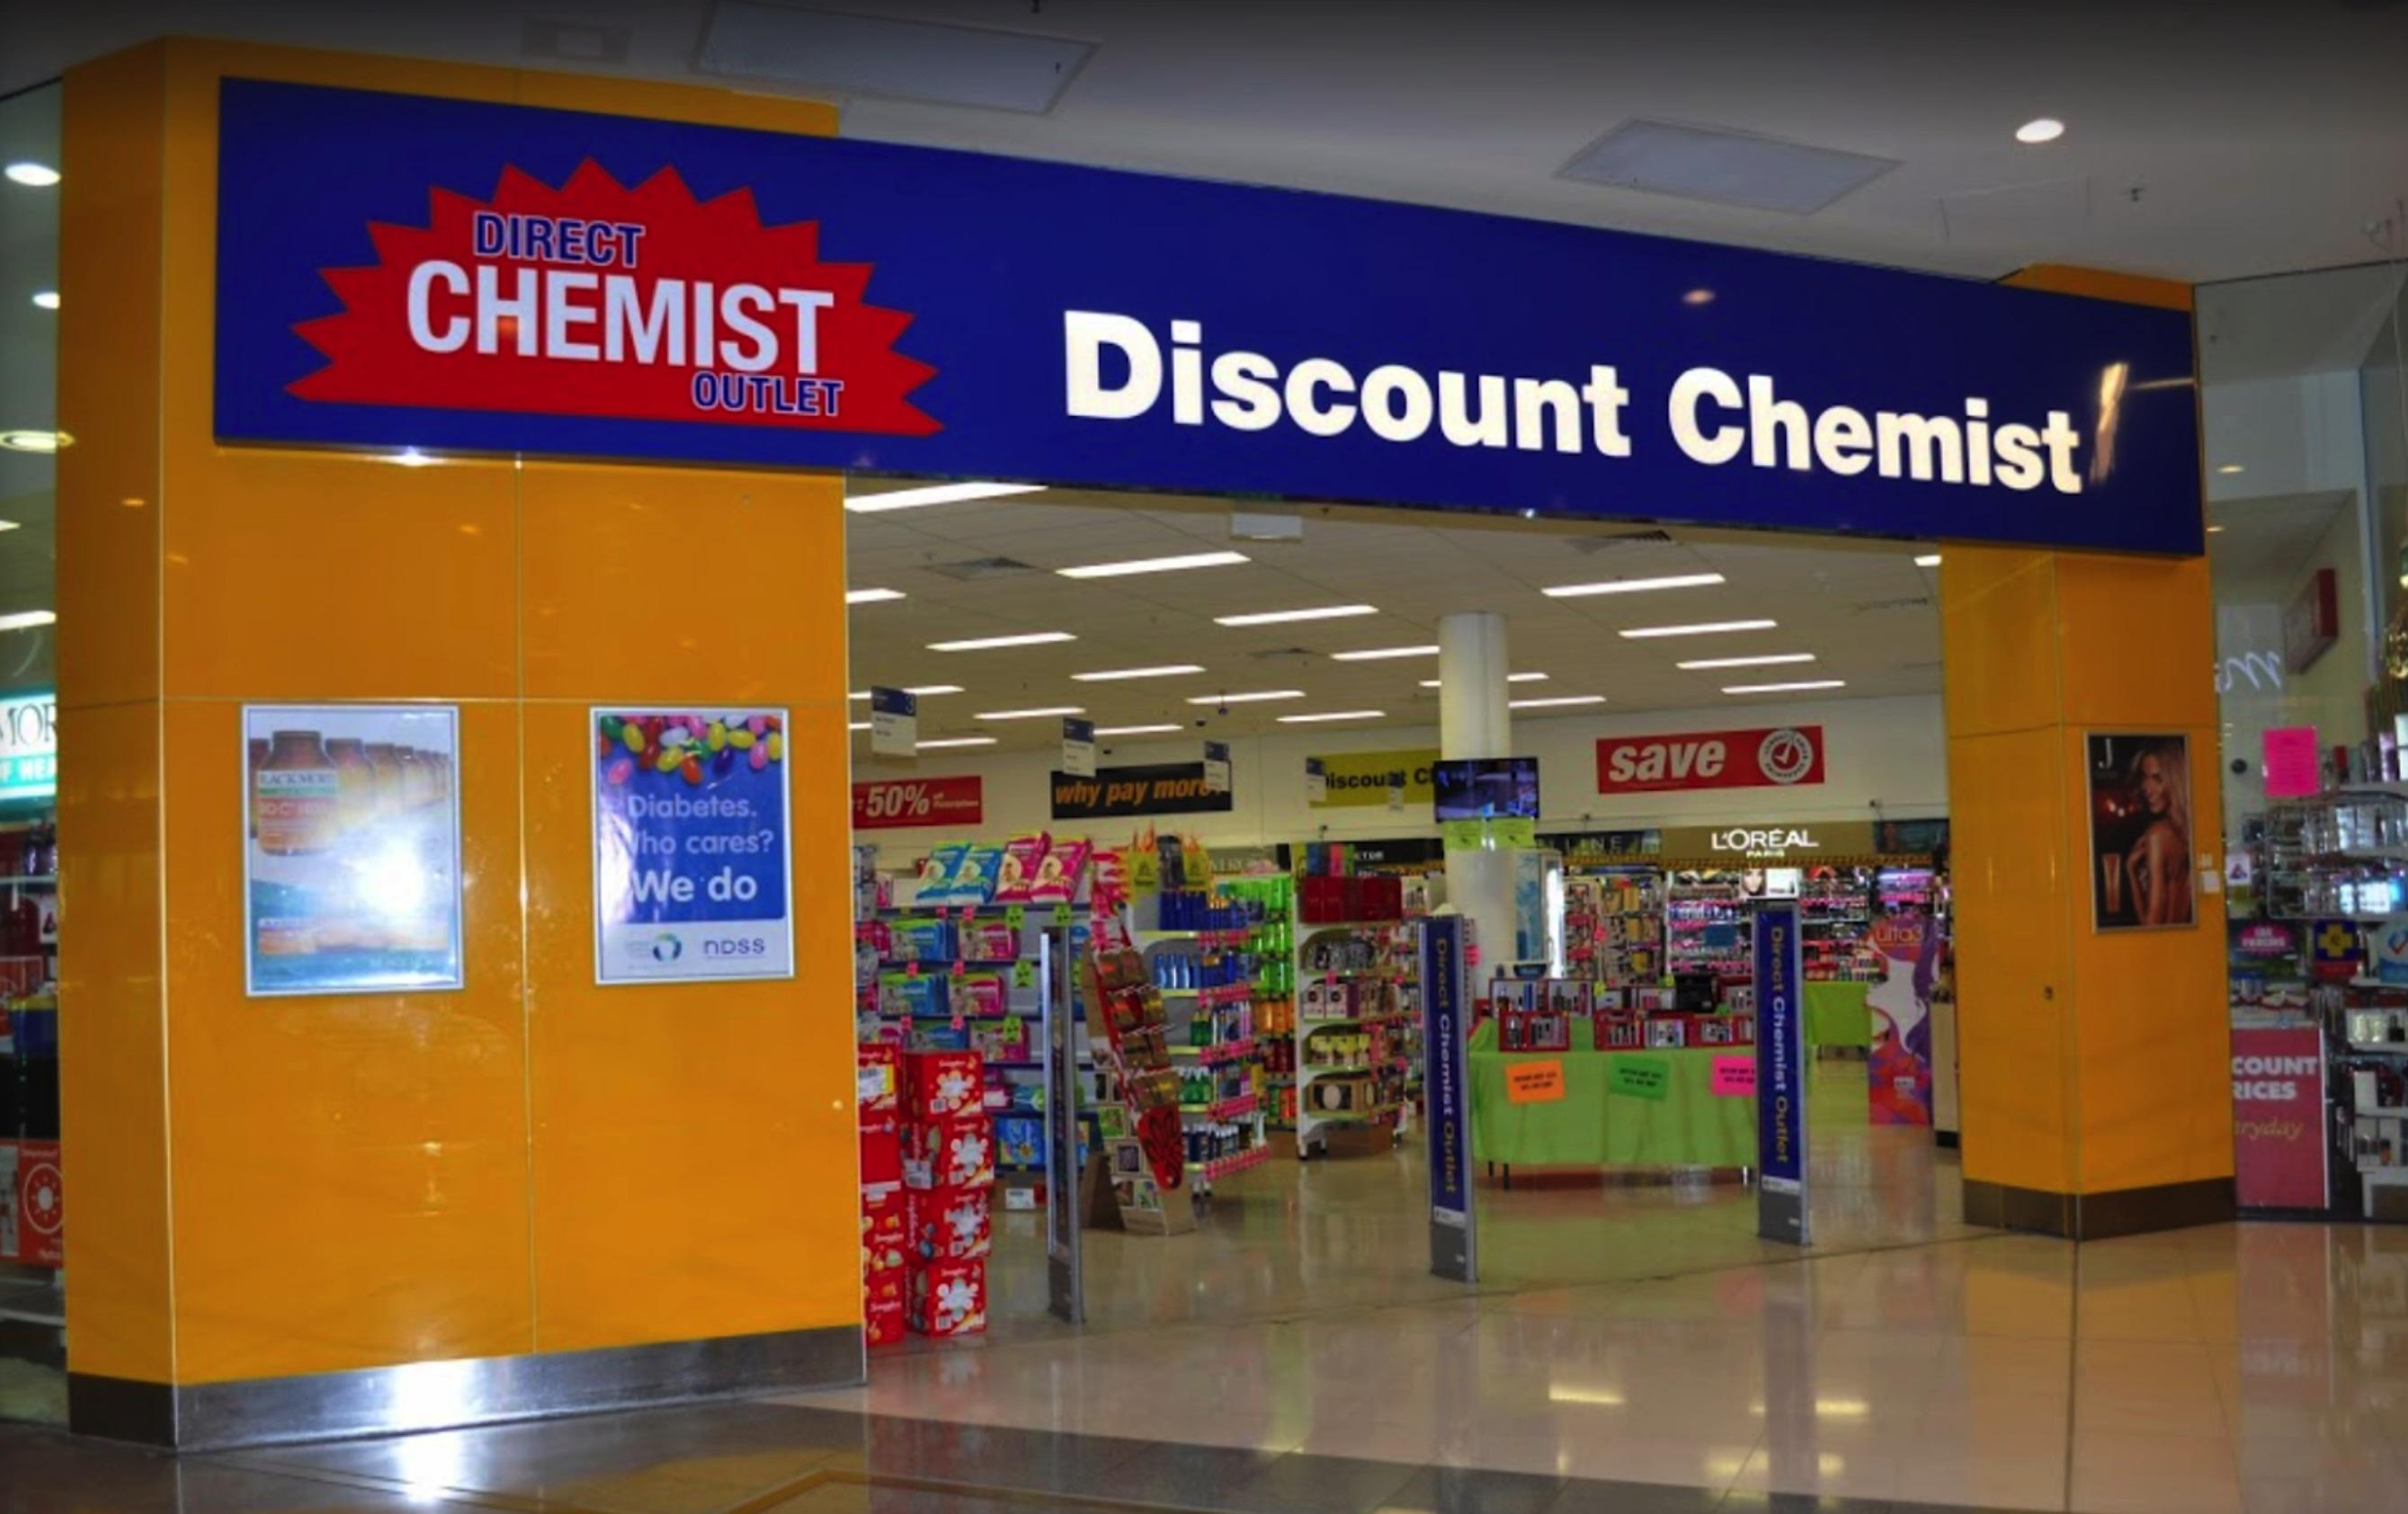 Direct Chemist Outlet Saphhire Marketplace